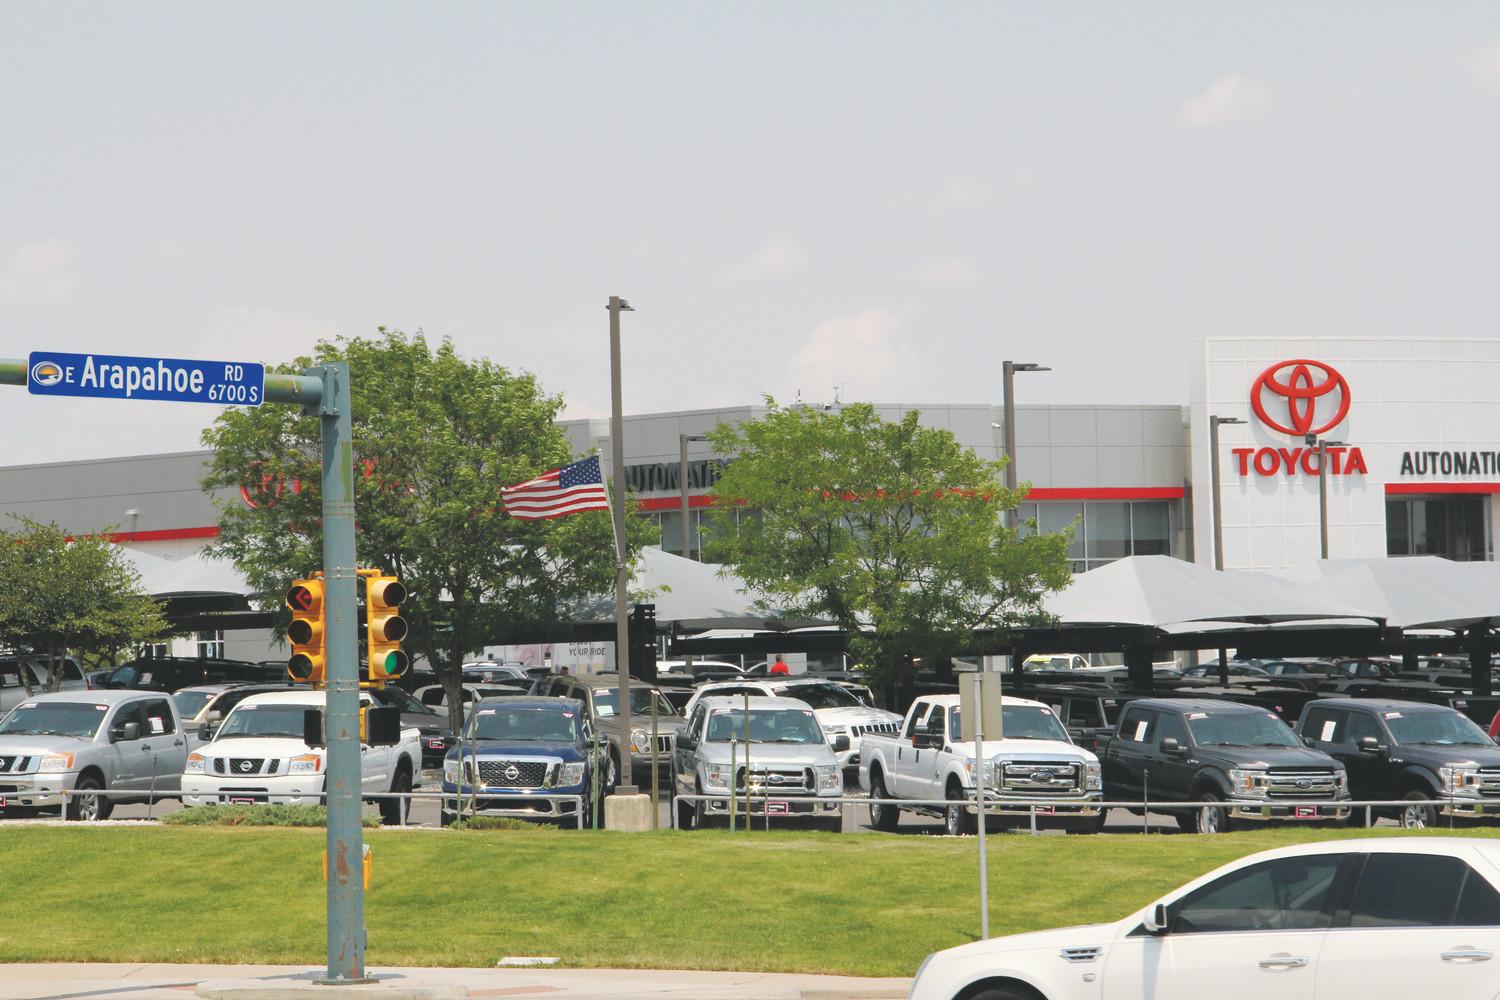 One of many car dealerships that line East Arapahoe Road in central Centennial, July 5, 2018.